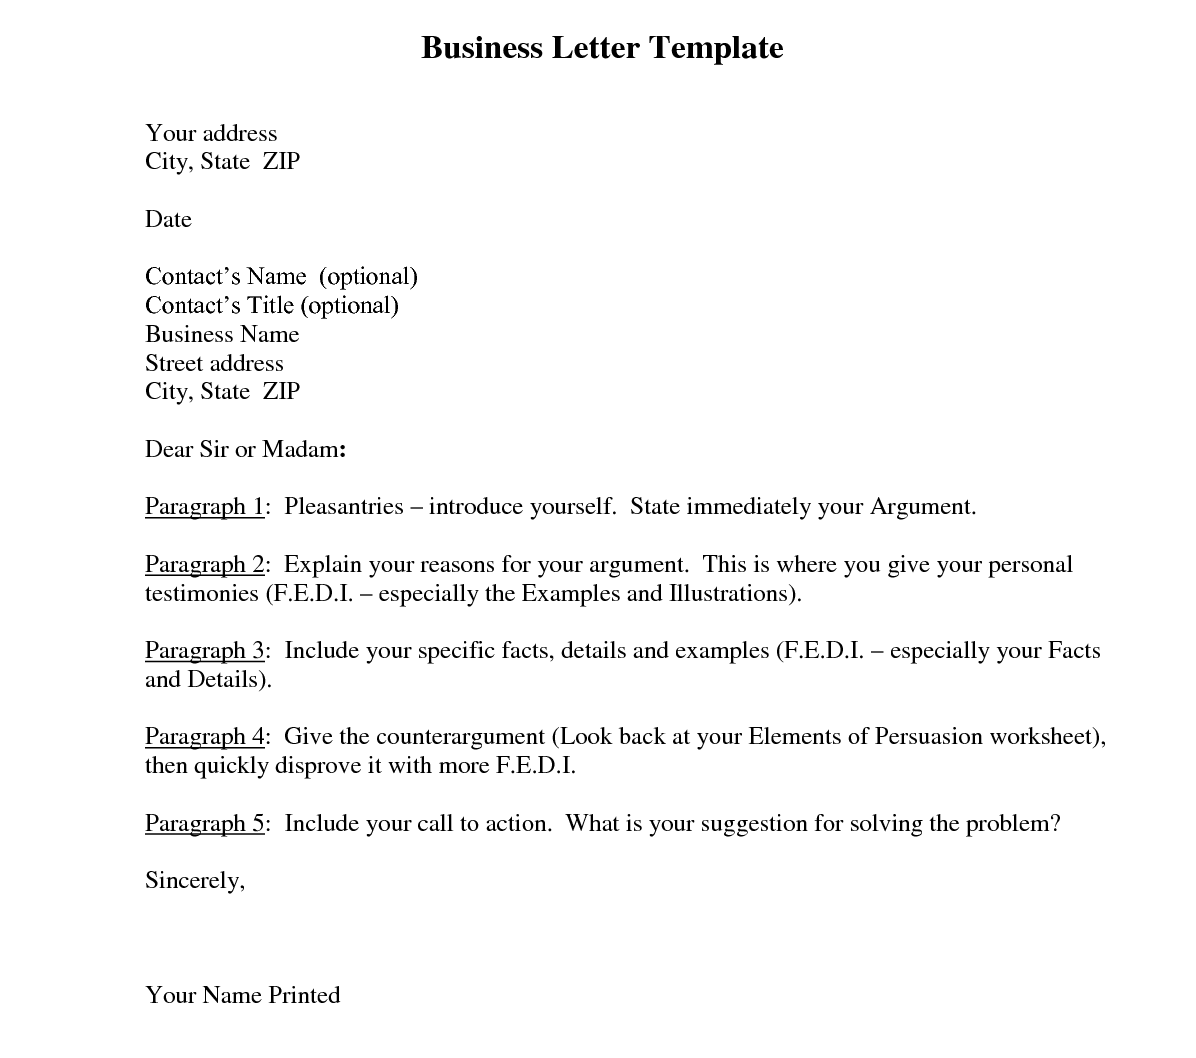 Letter format templates 28 images tamil letter writing format 7 formats of business letter template word pdf cheaphphosting Image collections